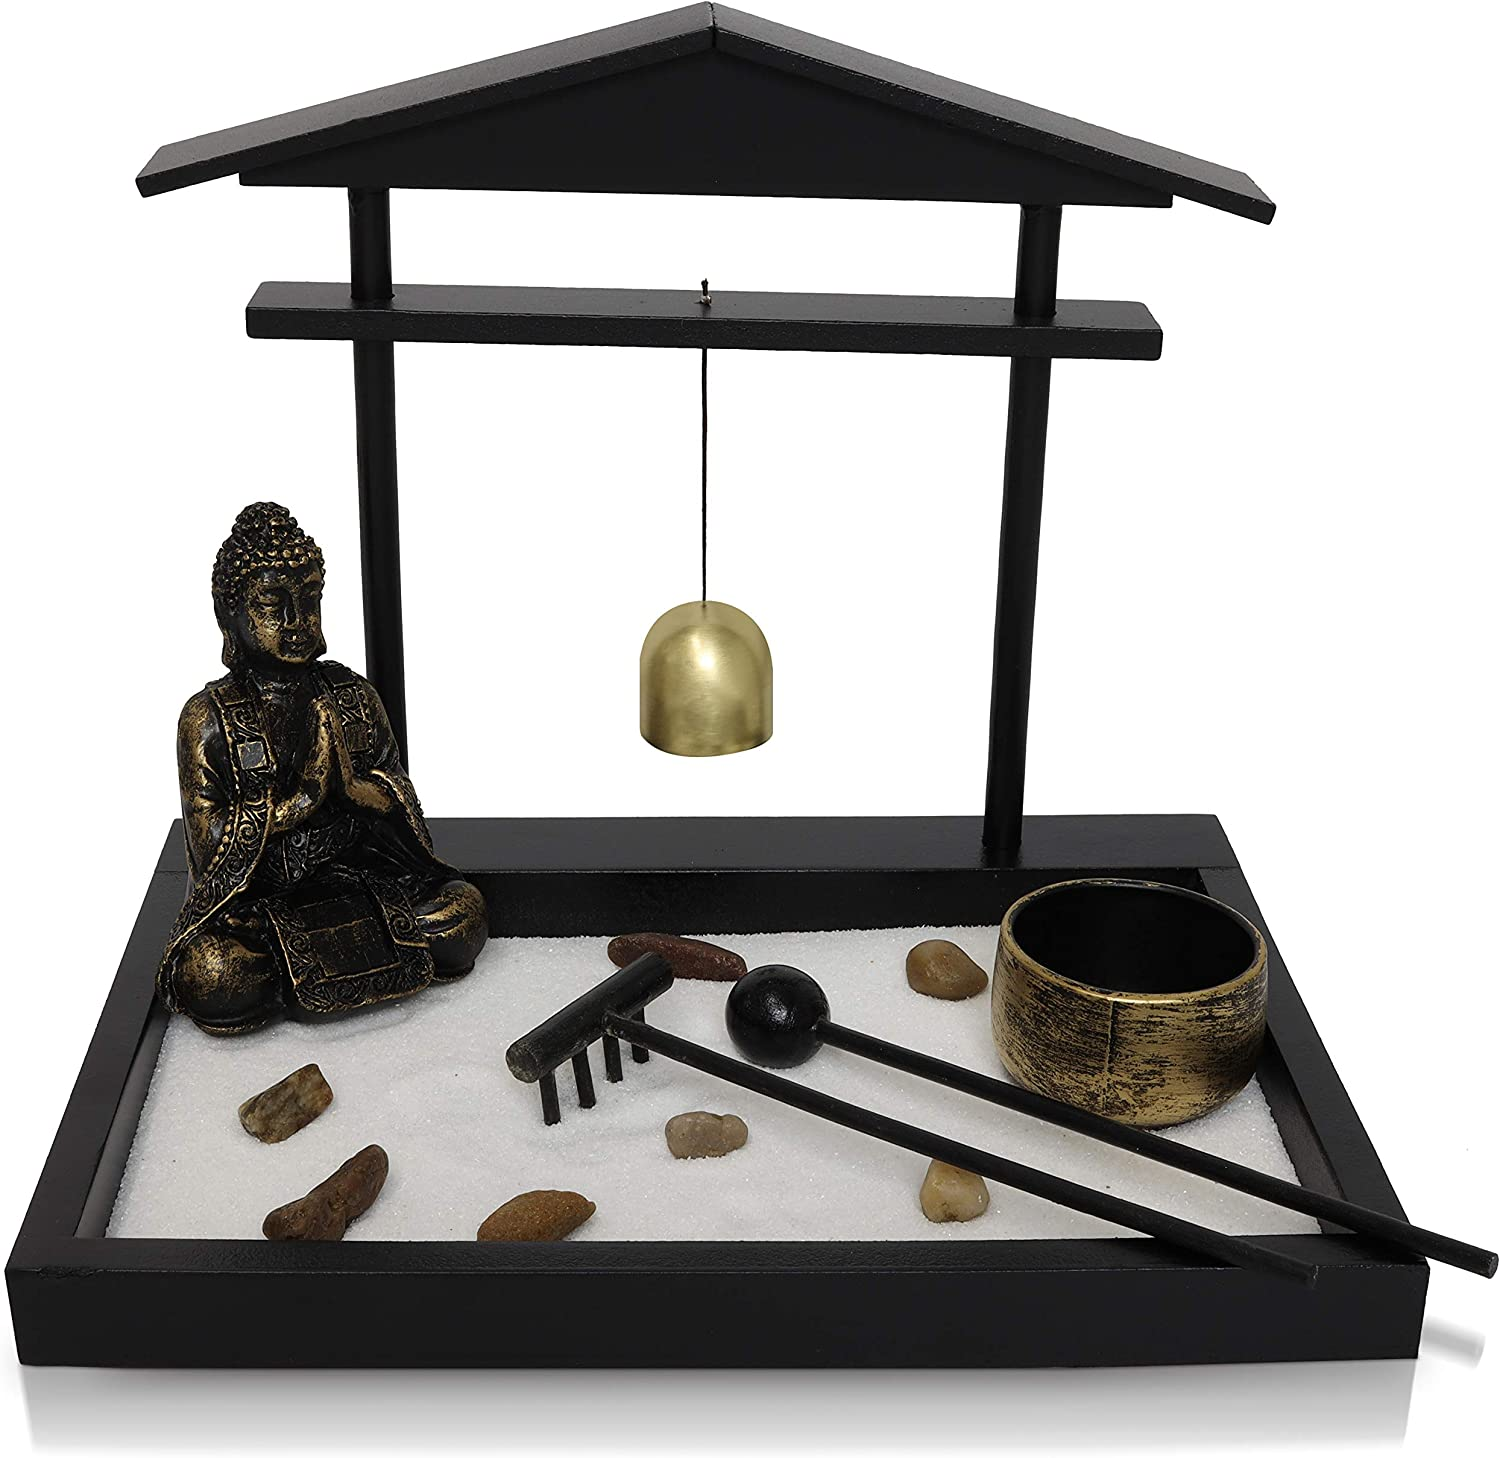 Basic Fundamentals Japanese Zen Garden Kit Home Decor - Buddha Statue with Bell Office Desk Accessories - Zen Garden Sand Corner Desk Office Decor - 8.75